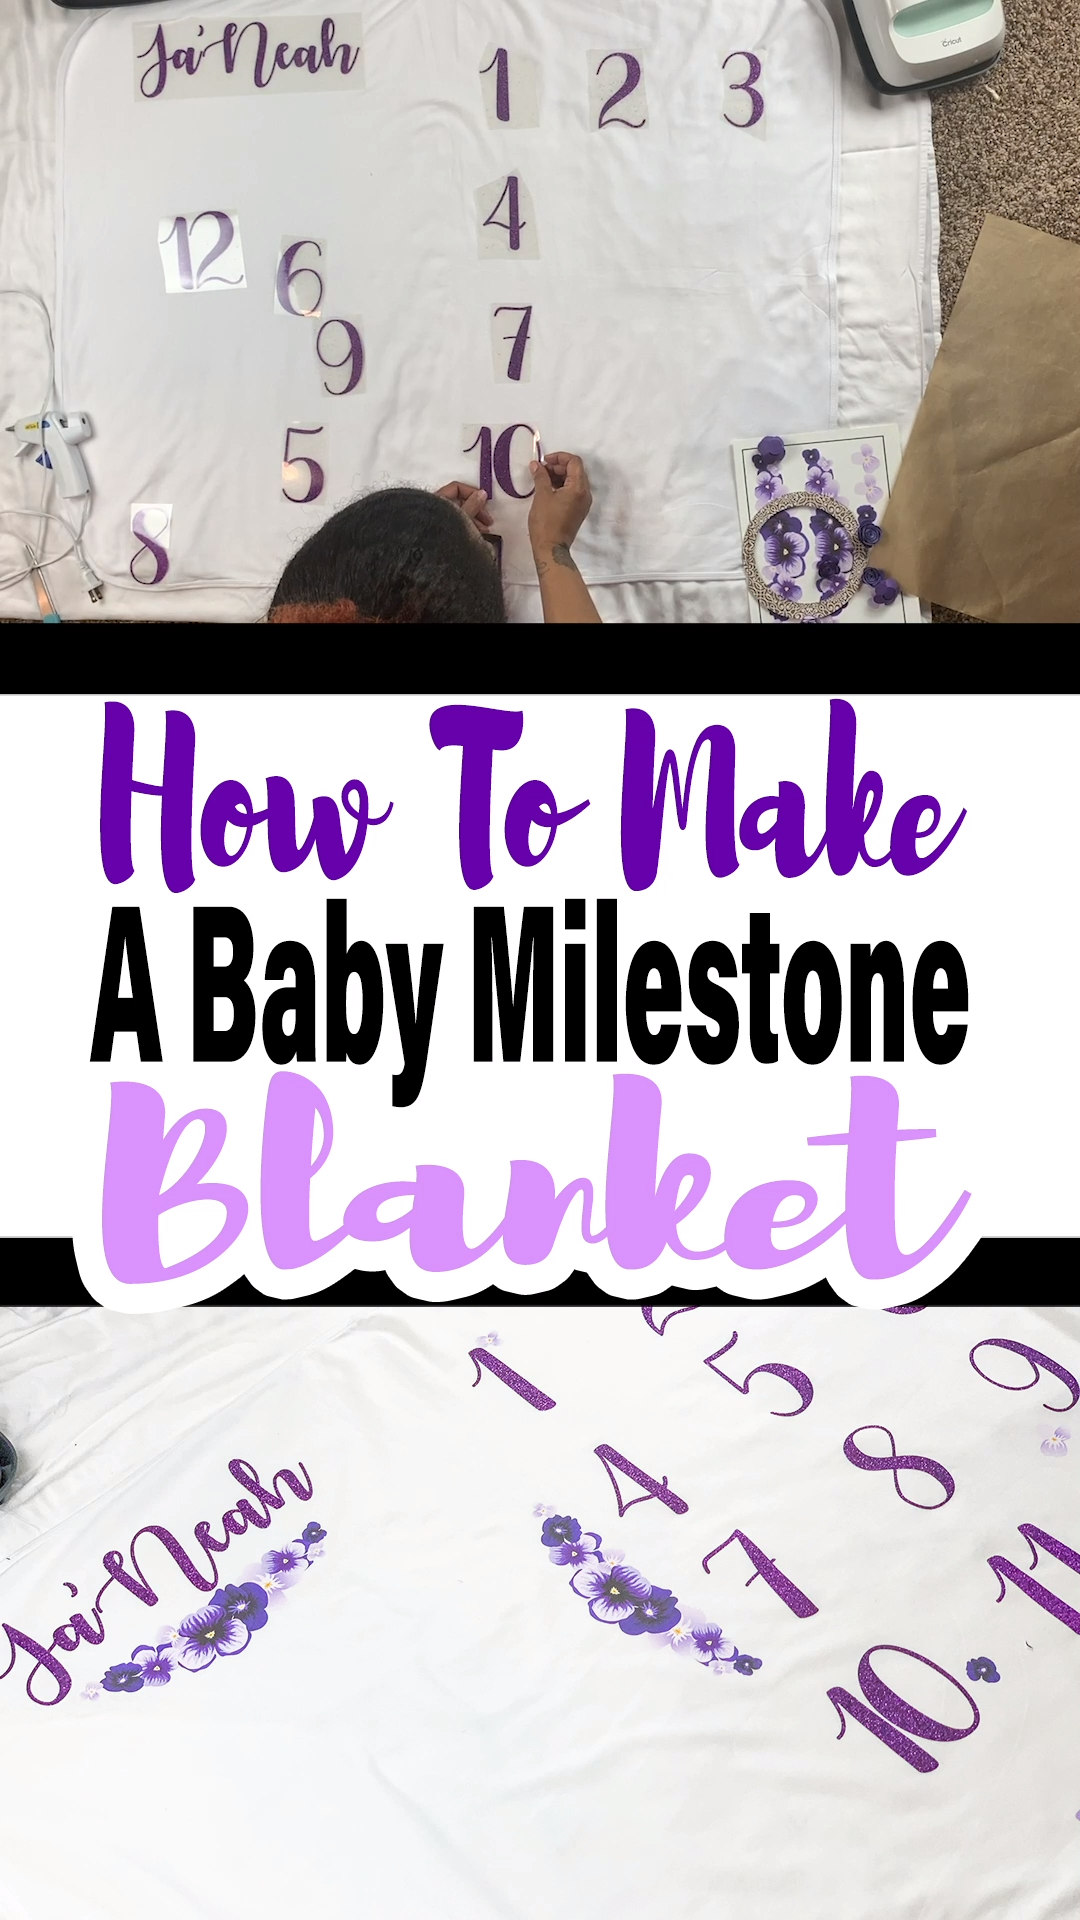 How To Make A Baby Milestone Blanket #cricutexploreair2projects